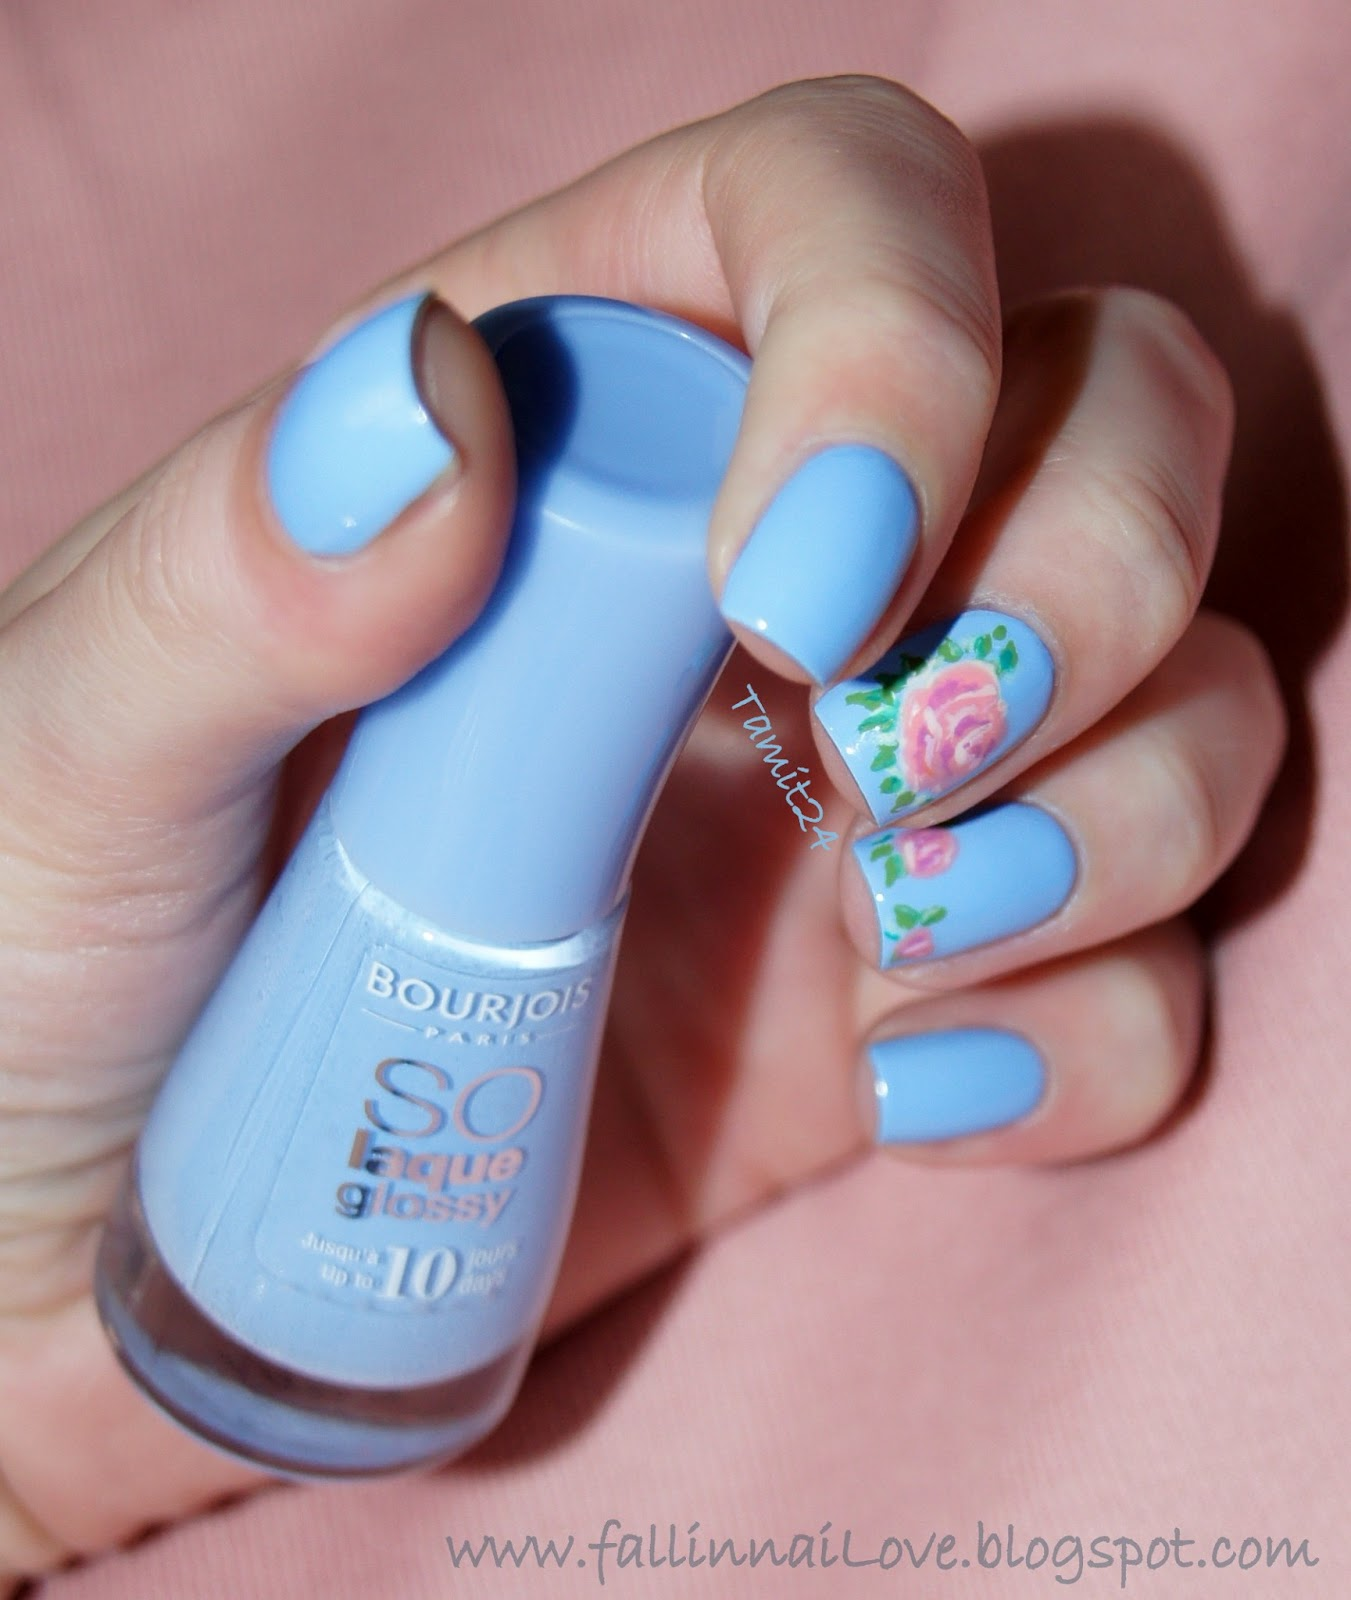 Fall In Nailove Bourjois So Laque Glossy Adora Bleu